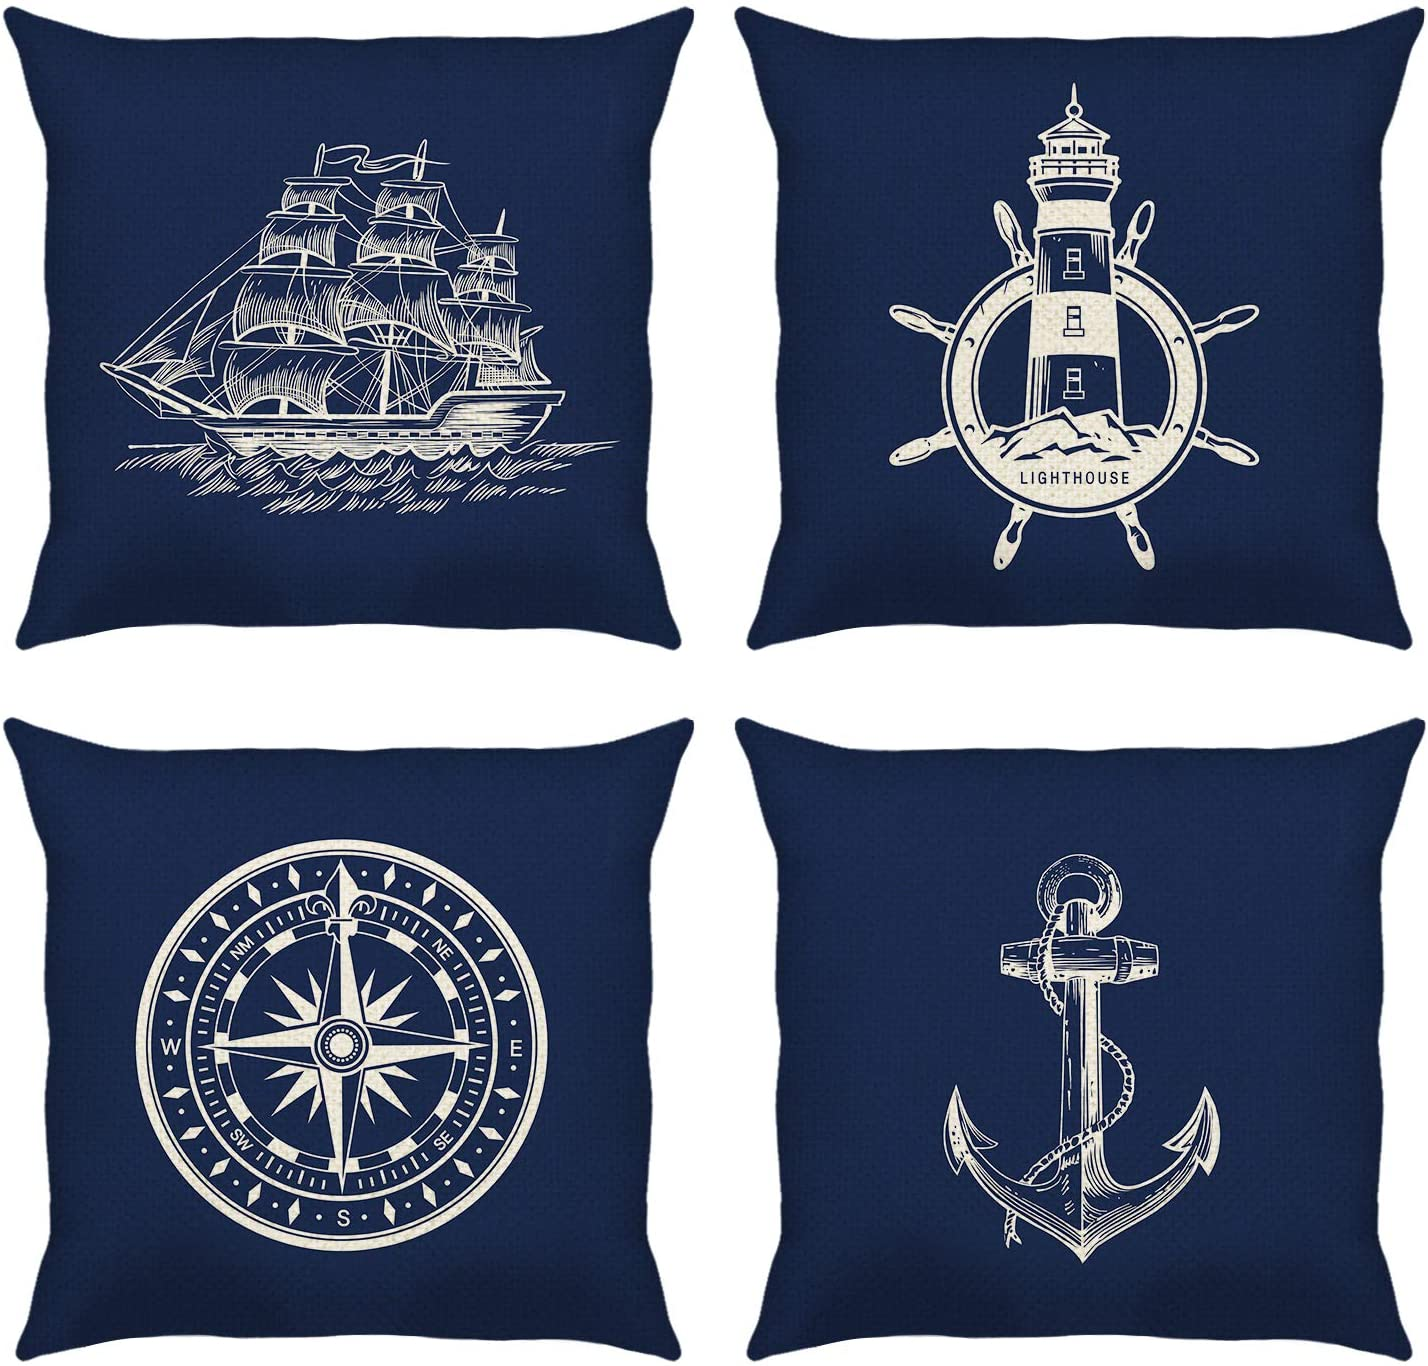 Bonhause Nautical Navy Blue Throw Pillow Covers 18 x 18 Inch Set of 4 Anchor Lighthouse Sailboat Compass Decorative Throw Pillow Cases Cotton Linen Cushion Covers for Sofa Couch Car Home Décor